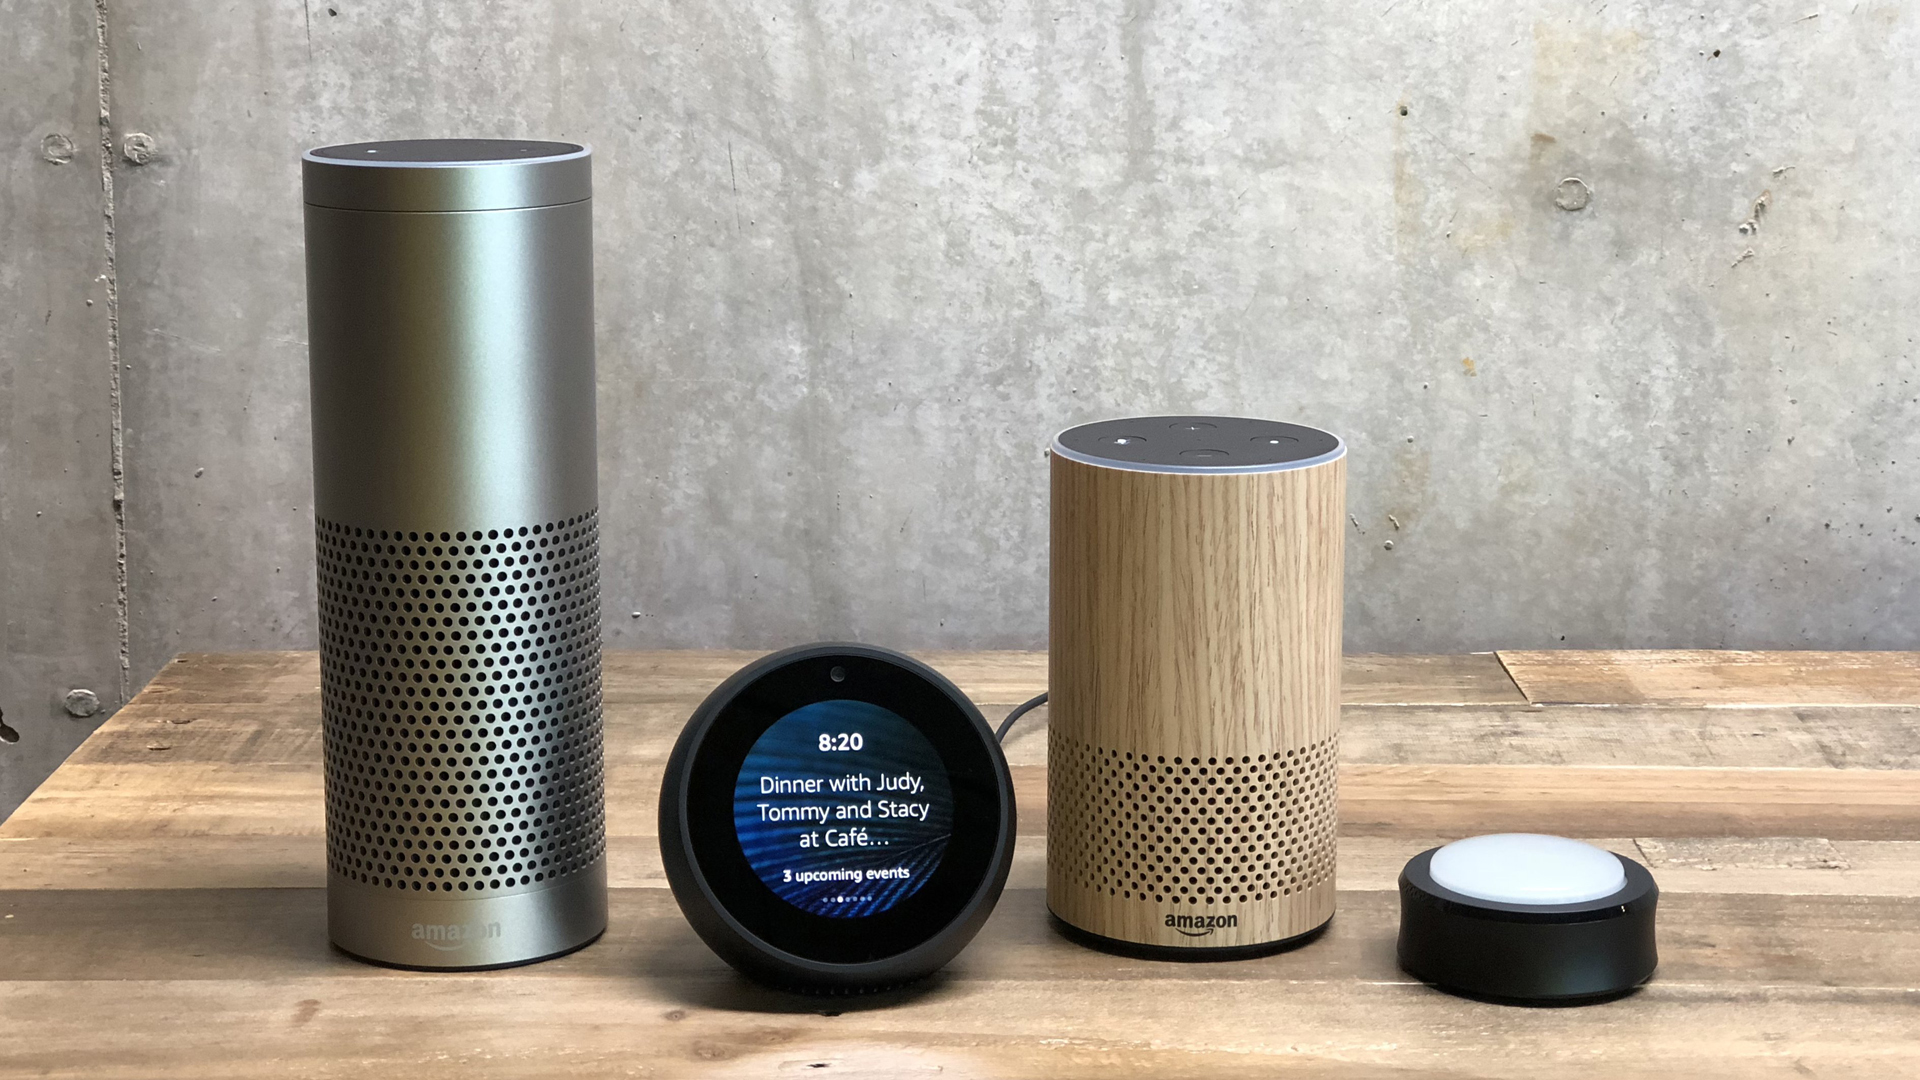 You can get the KTLA 5 News Flash briefing on any Amazon Alexa device. (Credit: Heather Kelly/Amazon via CNN Wire)